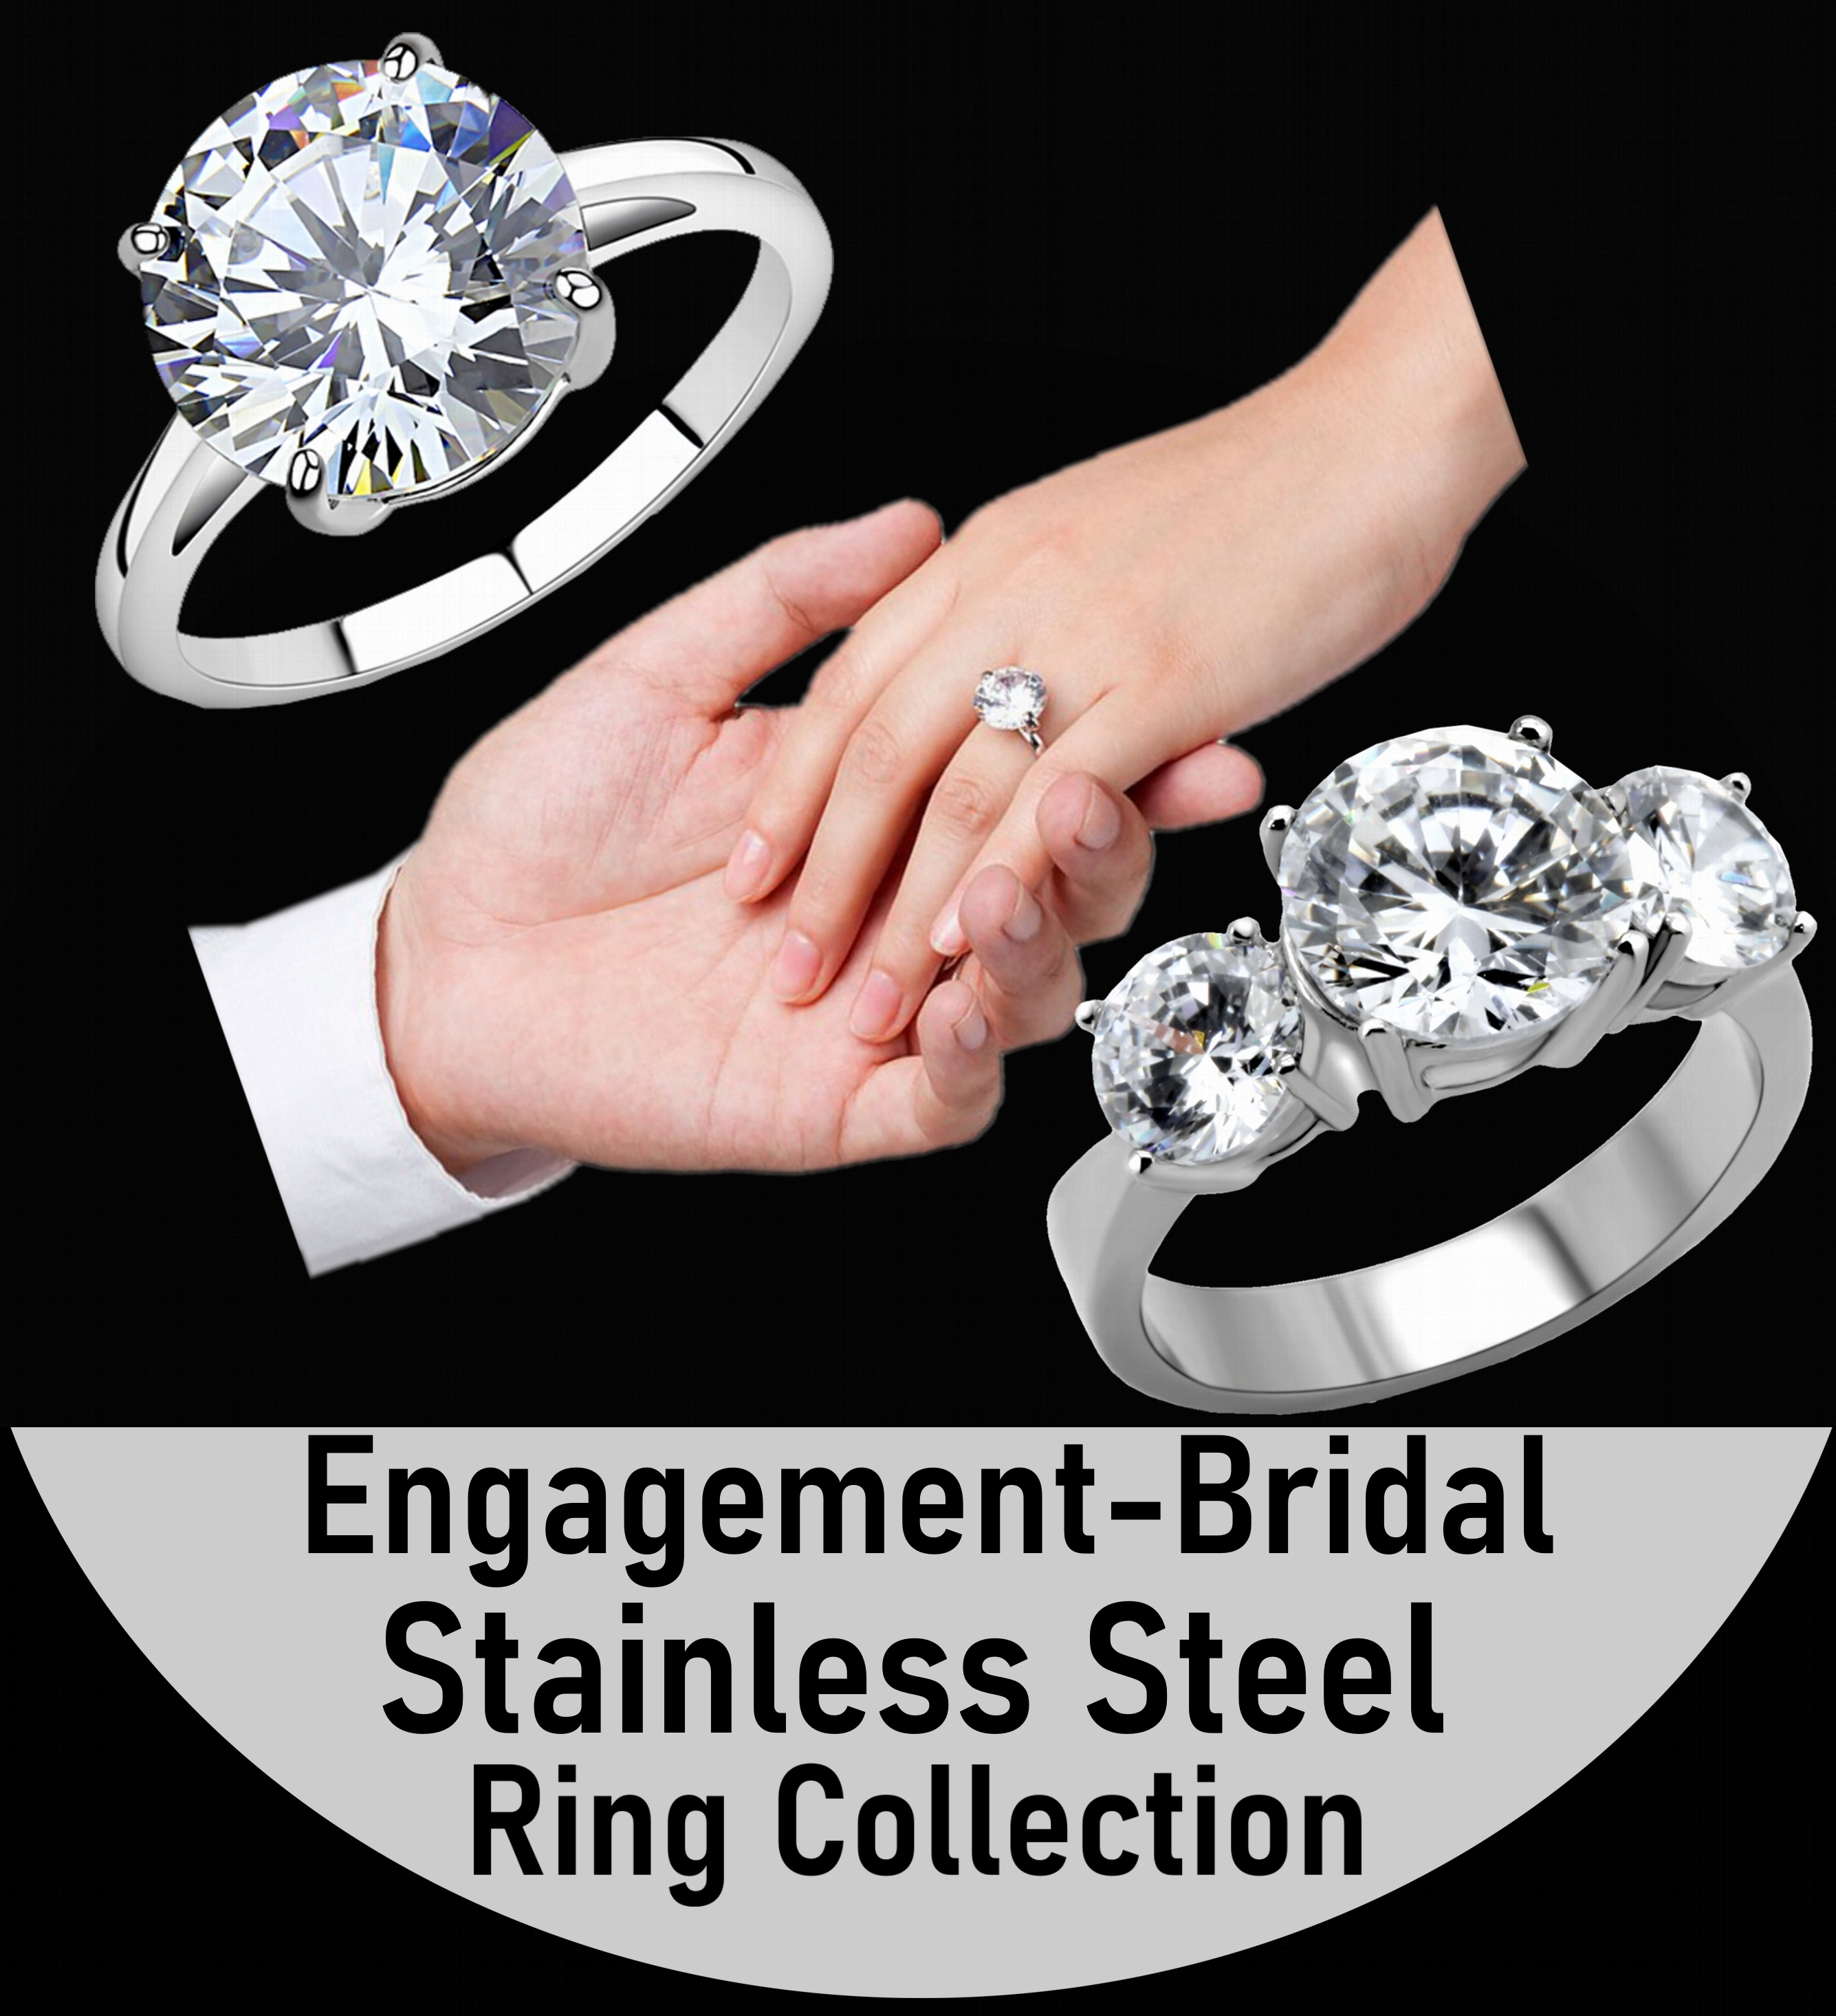 https://www.realimpostersjewelry.com/stainless-steel-engagement-rings